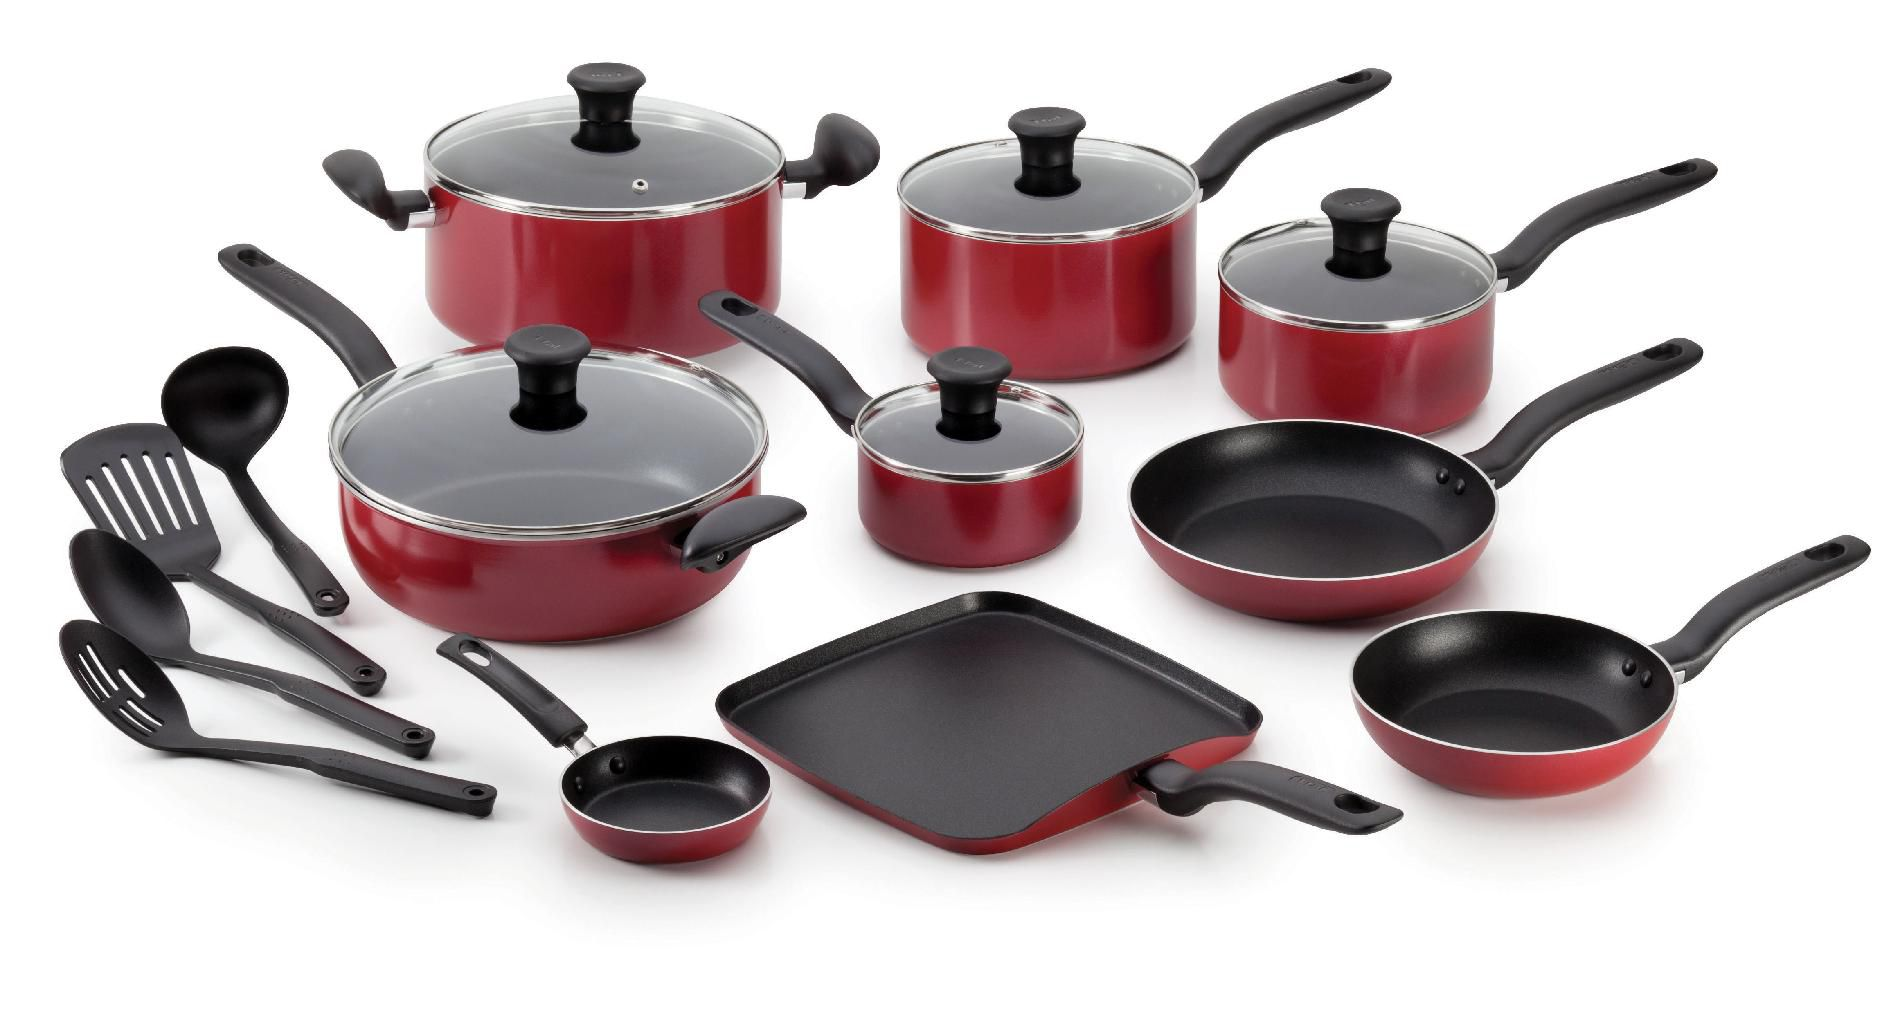 Top 10 Best Cookware Brands in India